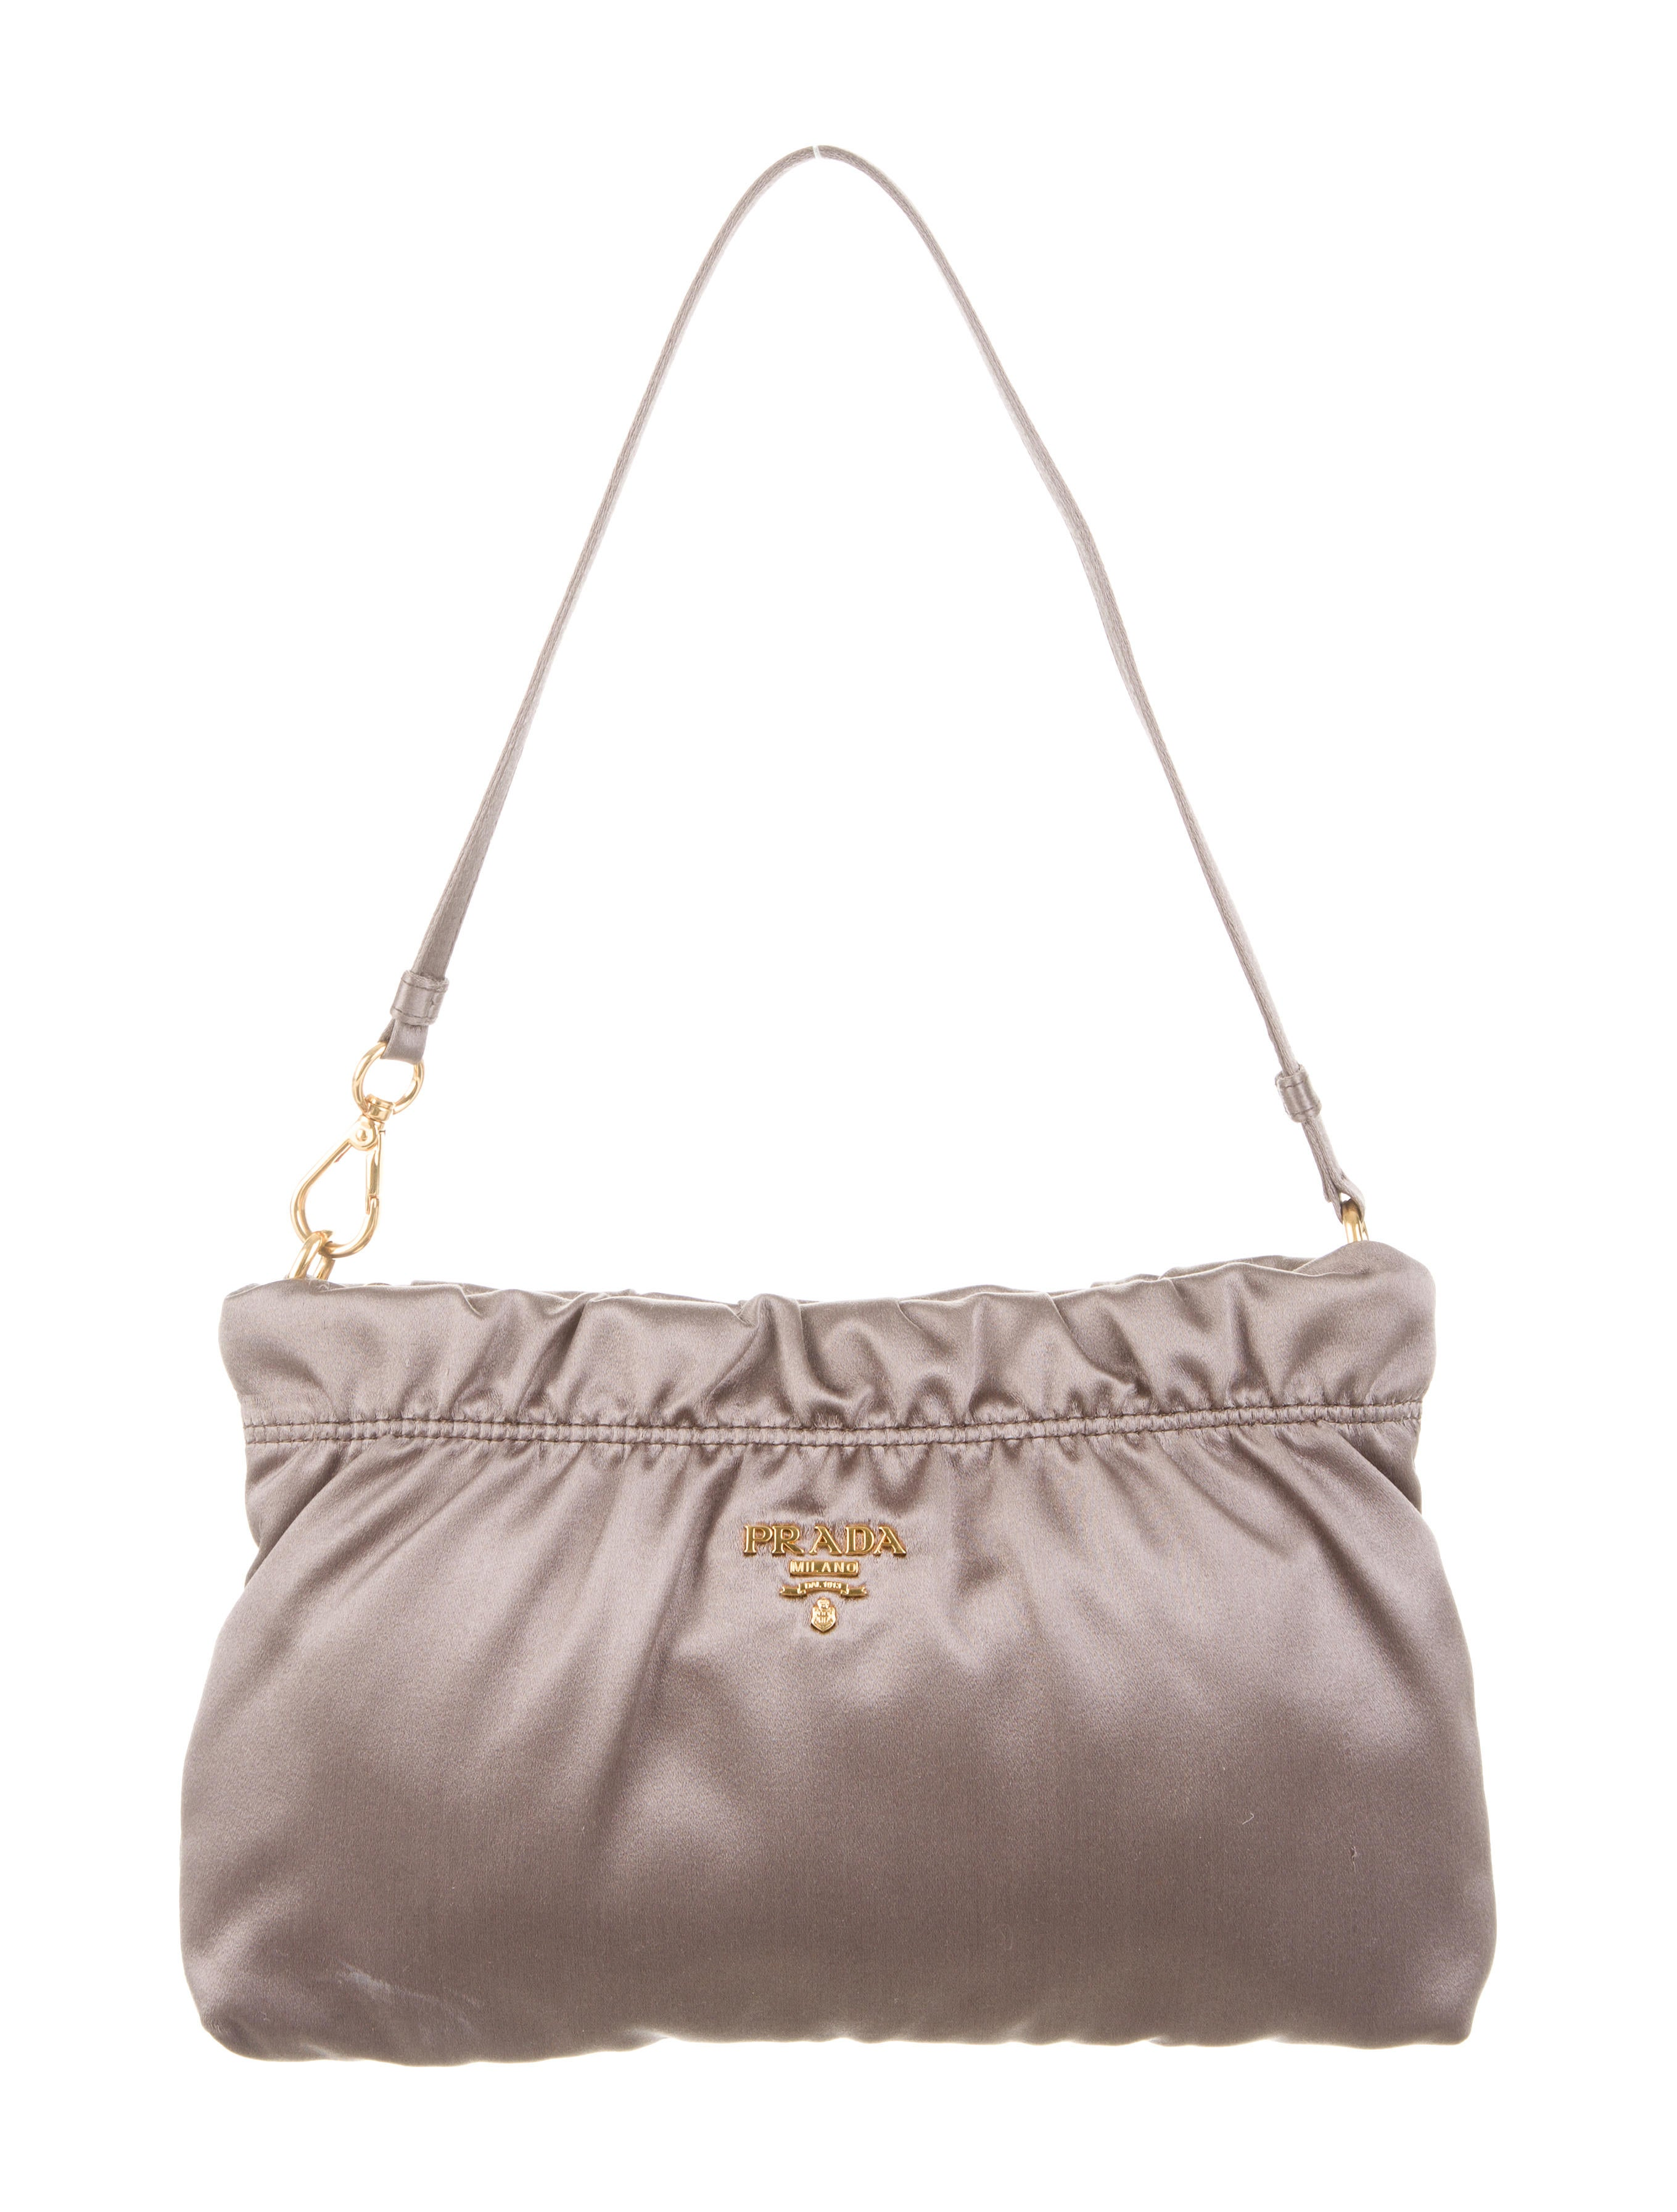 prada tote bag - Prada Handle Bag - Handbags - PRA71146 | The RealReal